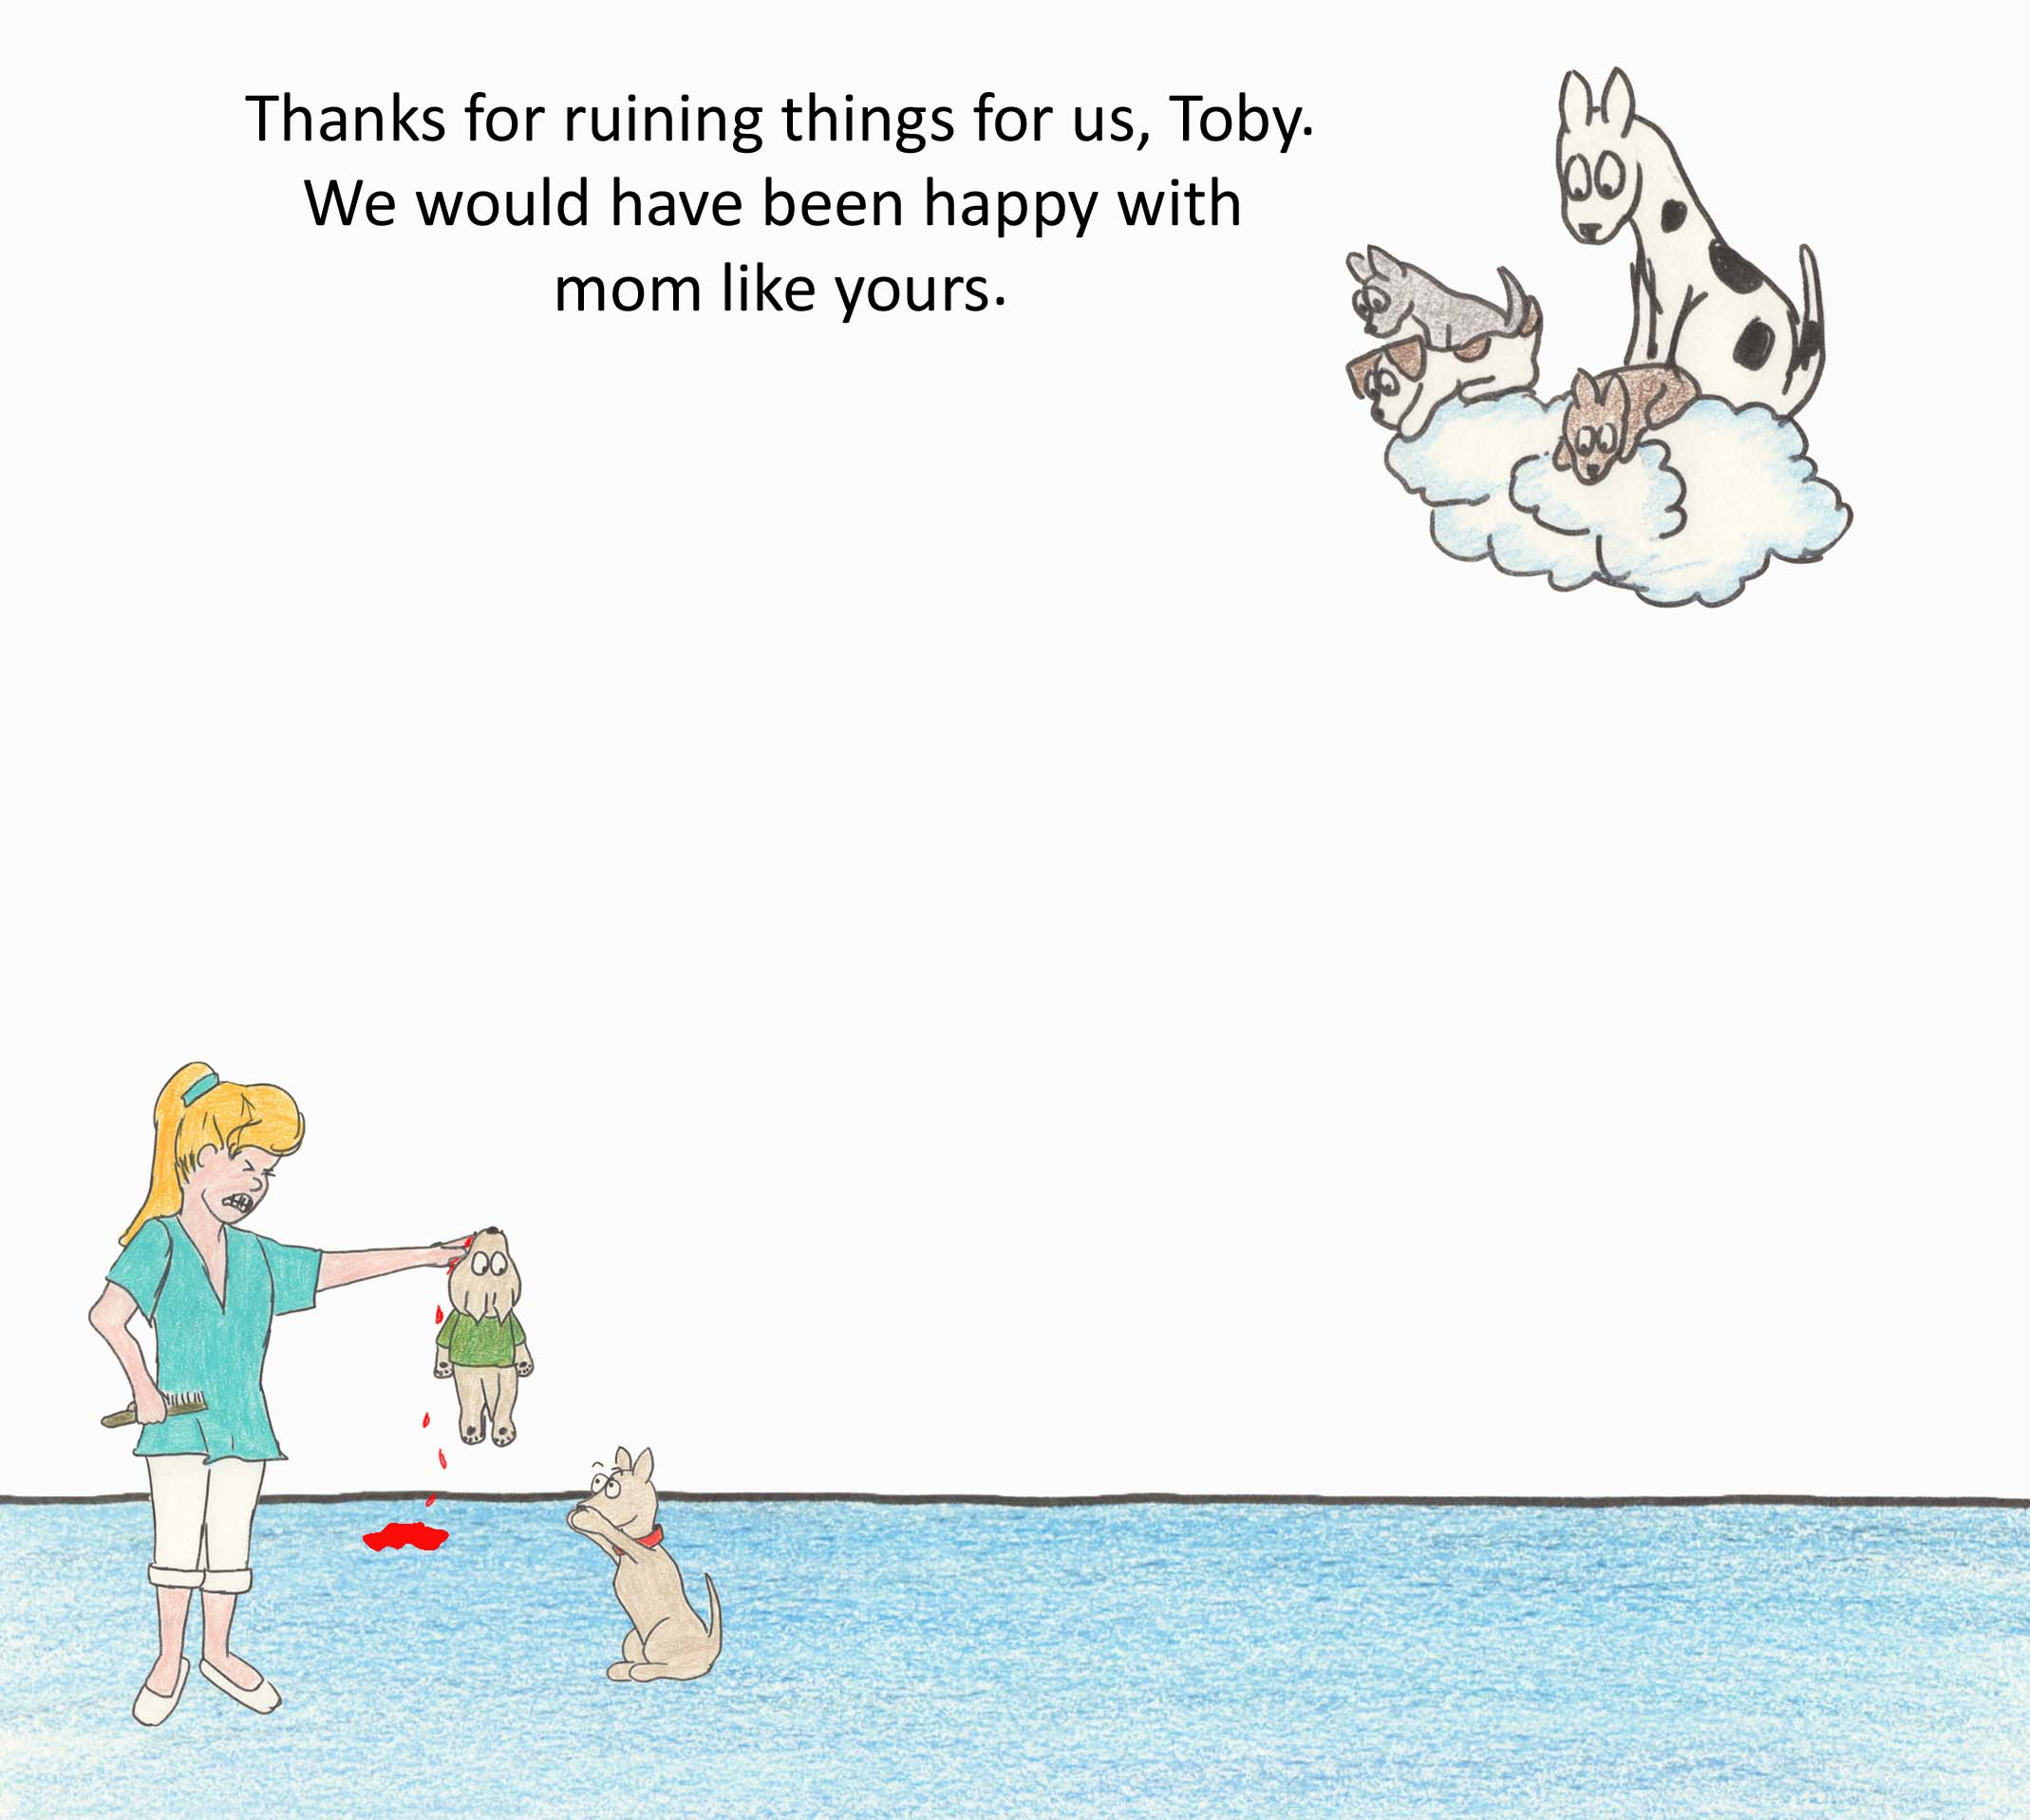 Thanks for ruining things for us Toby.  We would have liked to have a mom like yours.